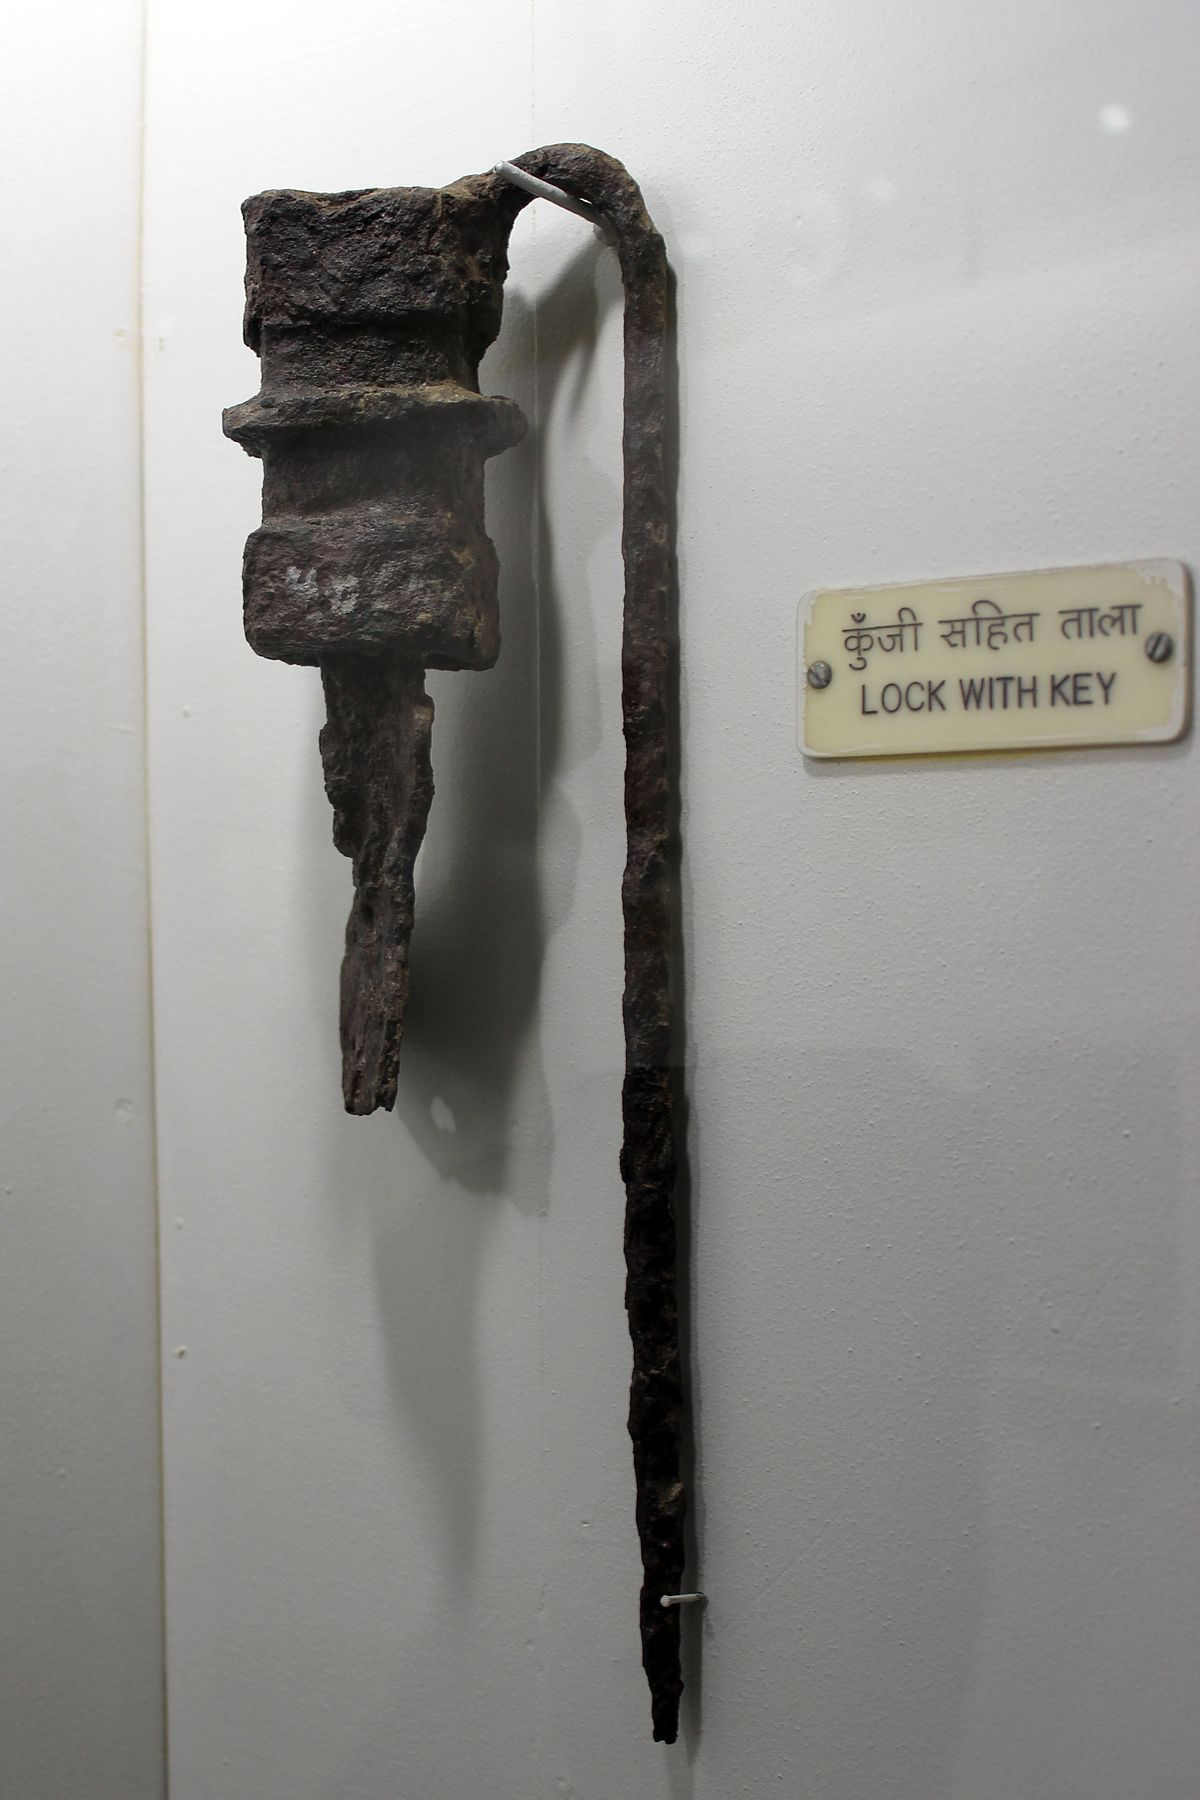 Lock And Key Wikipedia